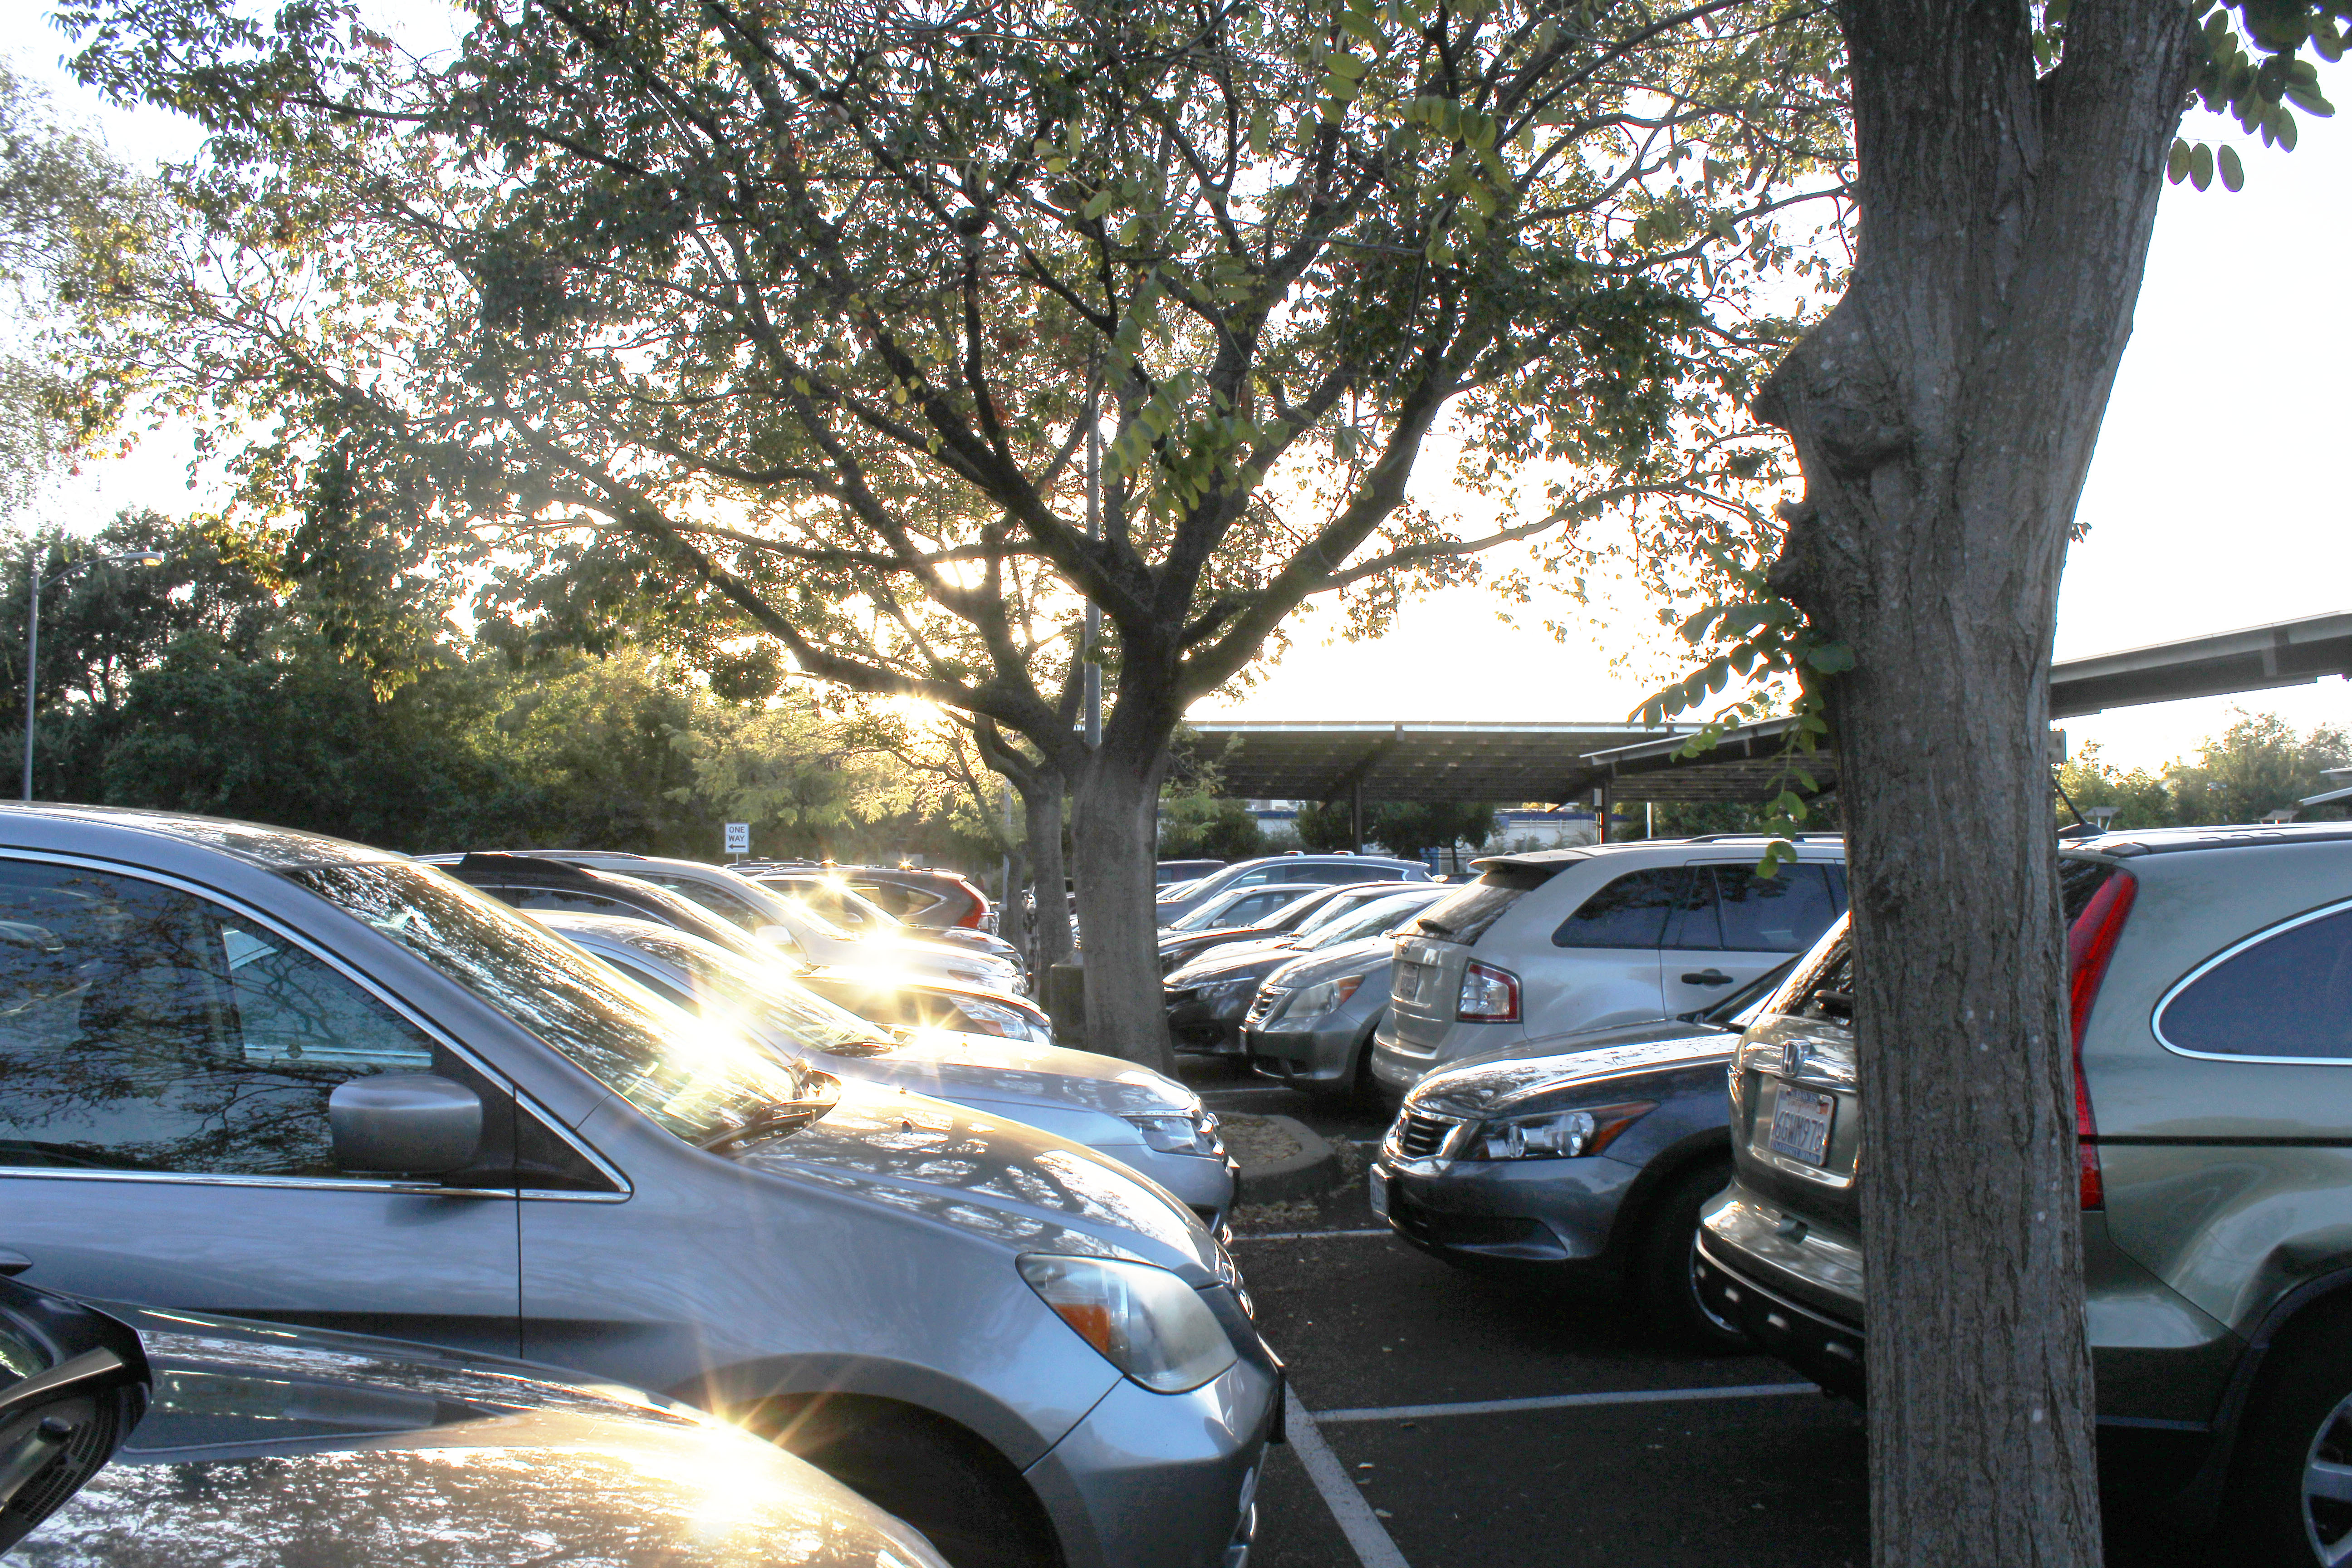 OPINION: Give seniors priority parking